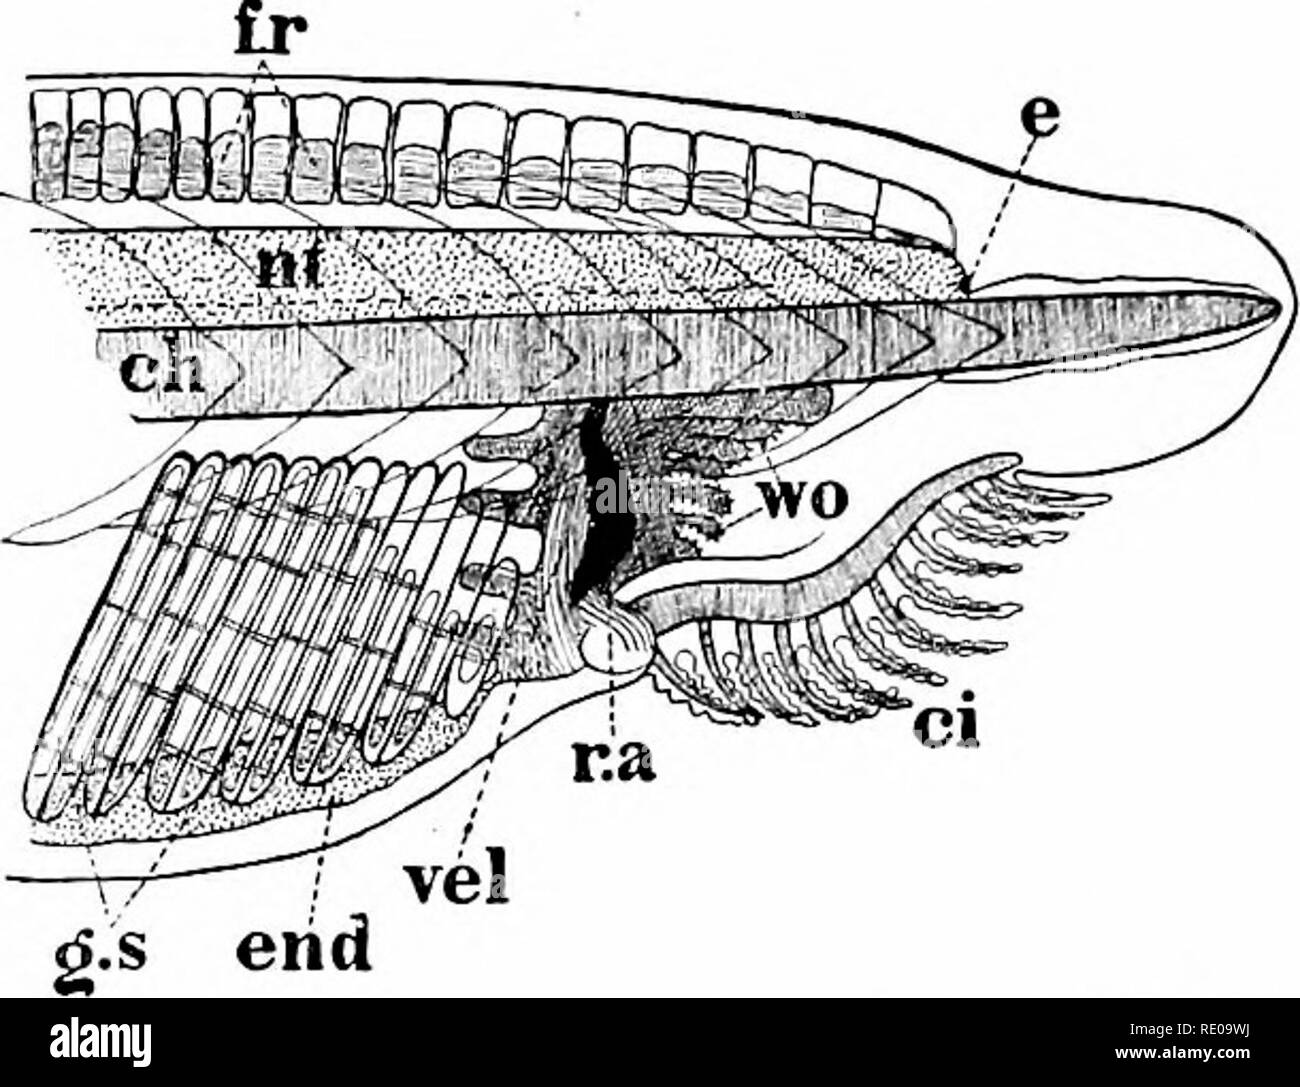 . Amphioxus and the ancestry of the vertebrates. Amphioxus; Sea squirts; Hemichordata. i8 ANATOMY OF AMPHIOXUS. the buccal cartilages. As pointed out by Johannes Miiller, they are not to be compared with the jaw-apparatus, nor to the hyoid or tongue- bone of the jaw-bearing Vertebrates, but they belong to the same cate- gory as the mouth-carti- lages of the Cyclostome fishes (which possess a hyoid cartilage in addi- tion) and the labial car- tilages of Selachians (sharks). The absence of paired. auditory organ has been Fig. 3. — Anterior portion of body of young transparent individual. (After  - Stock Image